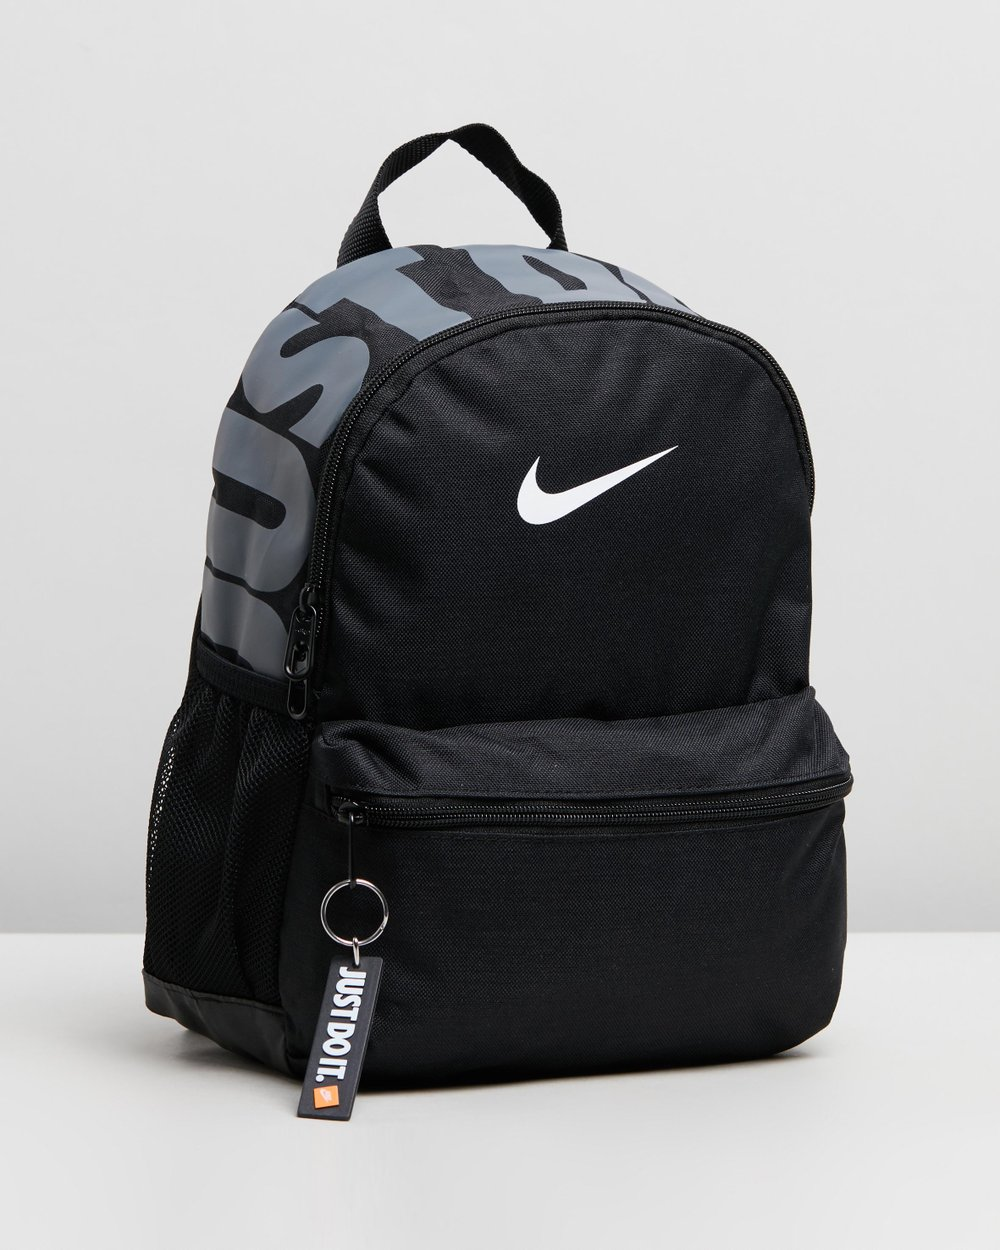 a27c7438ea54 Brasilia Just Do It Backpack - Teen by Nike Online